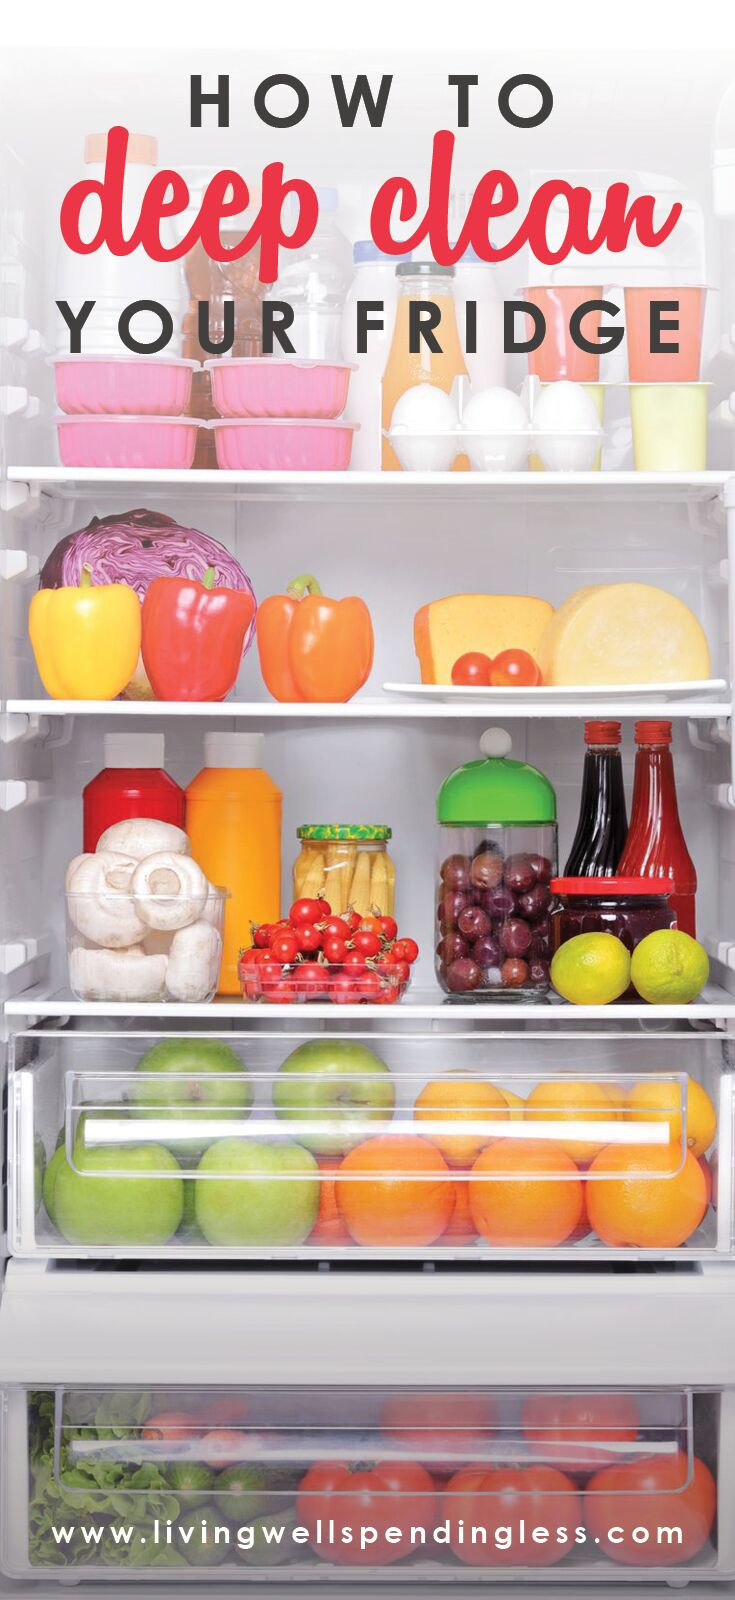 How to Deep Clean Your Fridge: A Step-By-Step Guide.